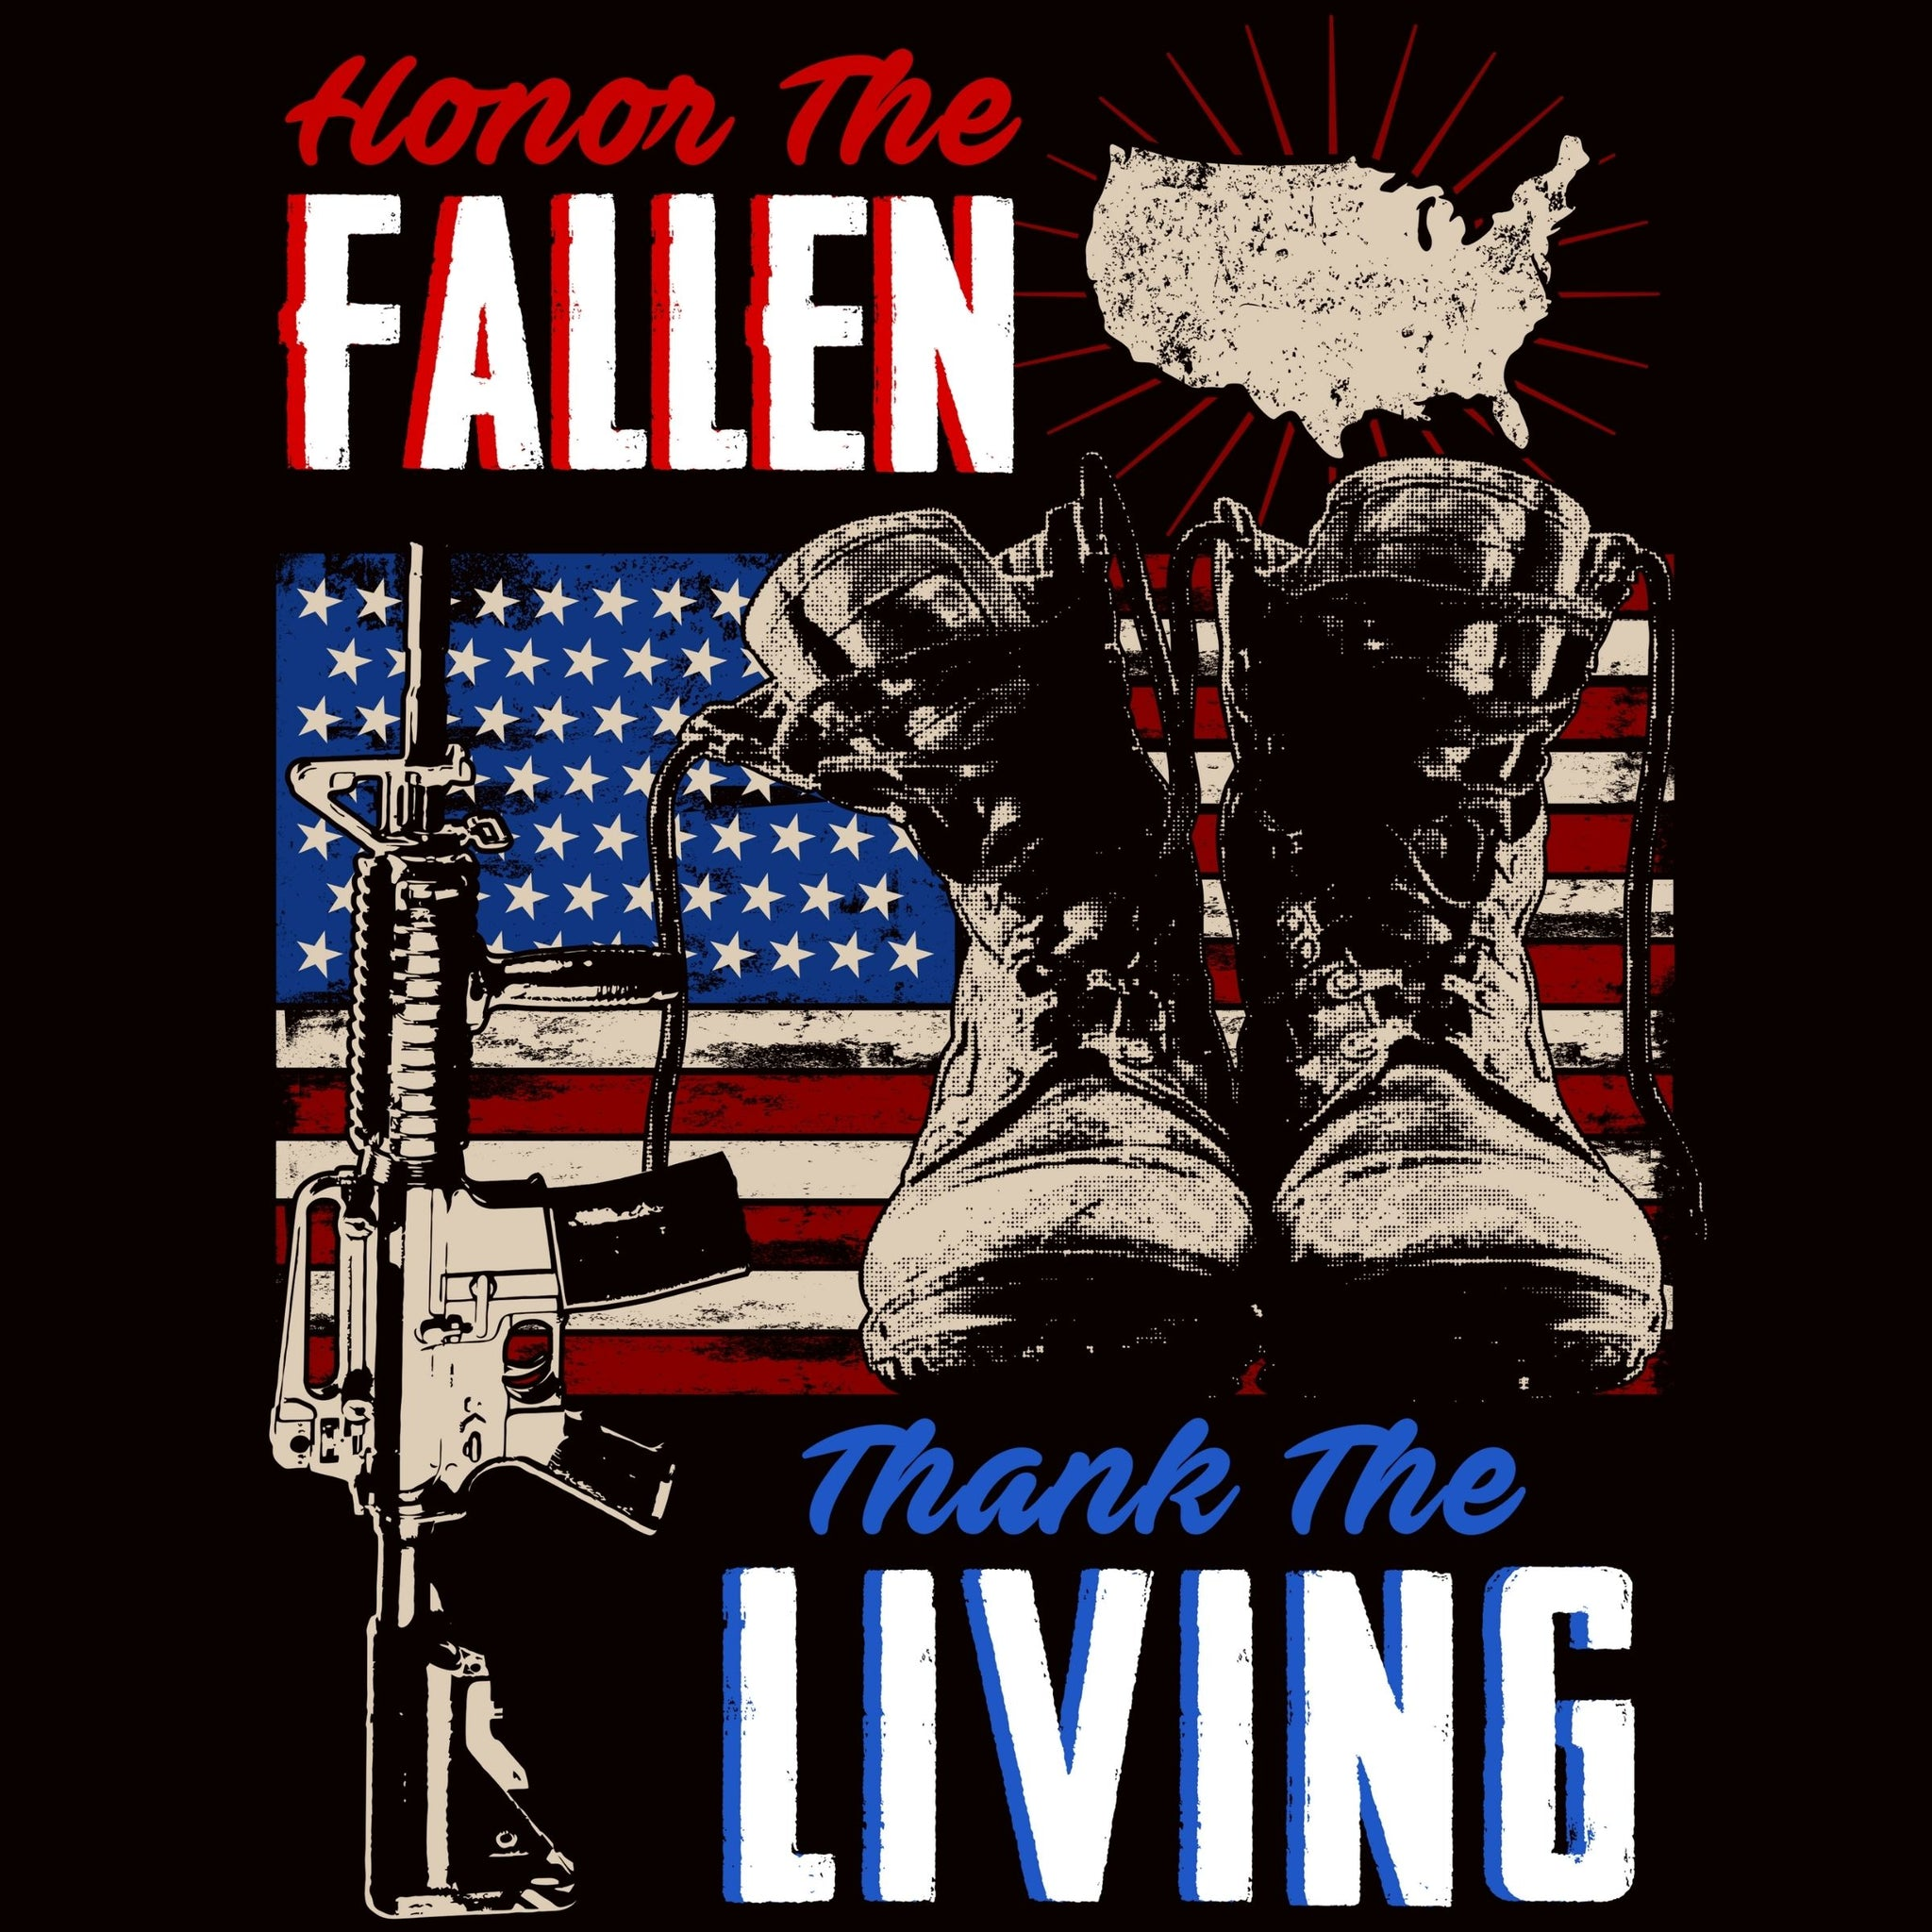 Honor The Fallen Thank The Living - Bastard Graphics